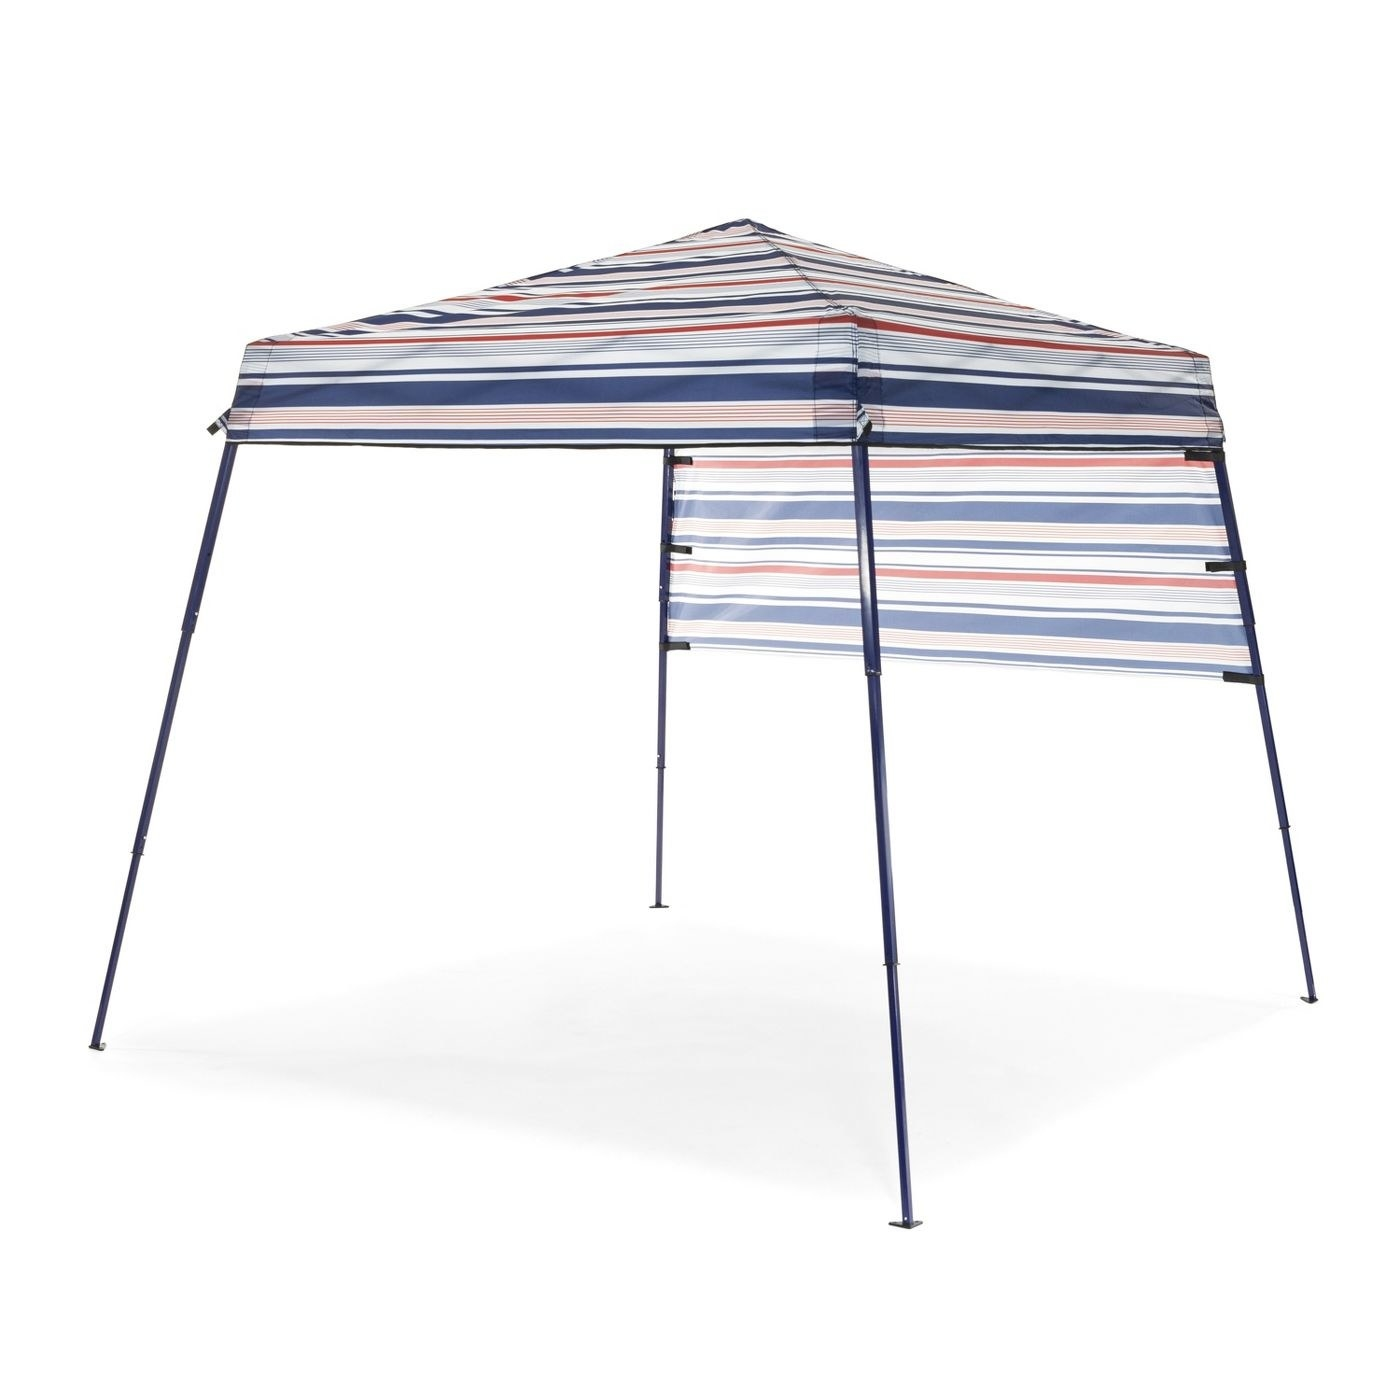 A red, white, and blue multi-colored gazebo on four thin black legs